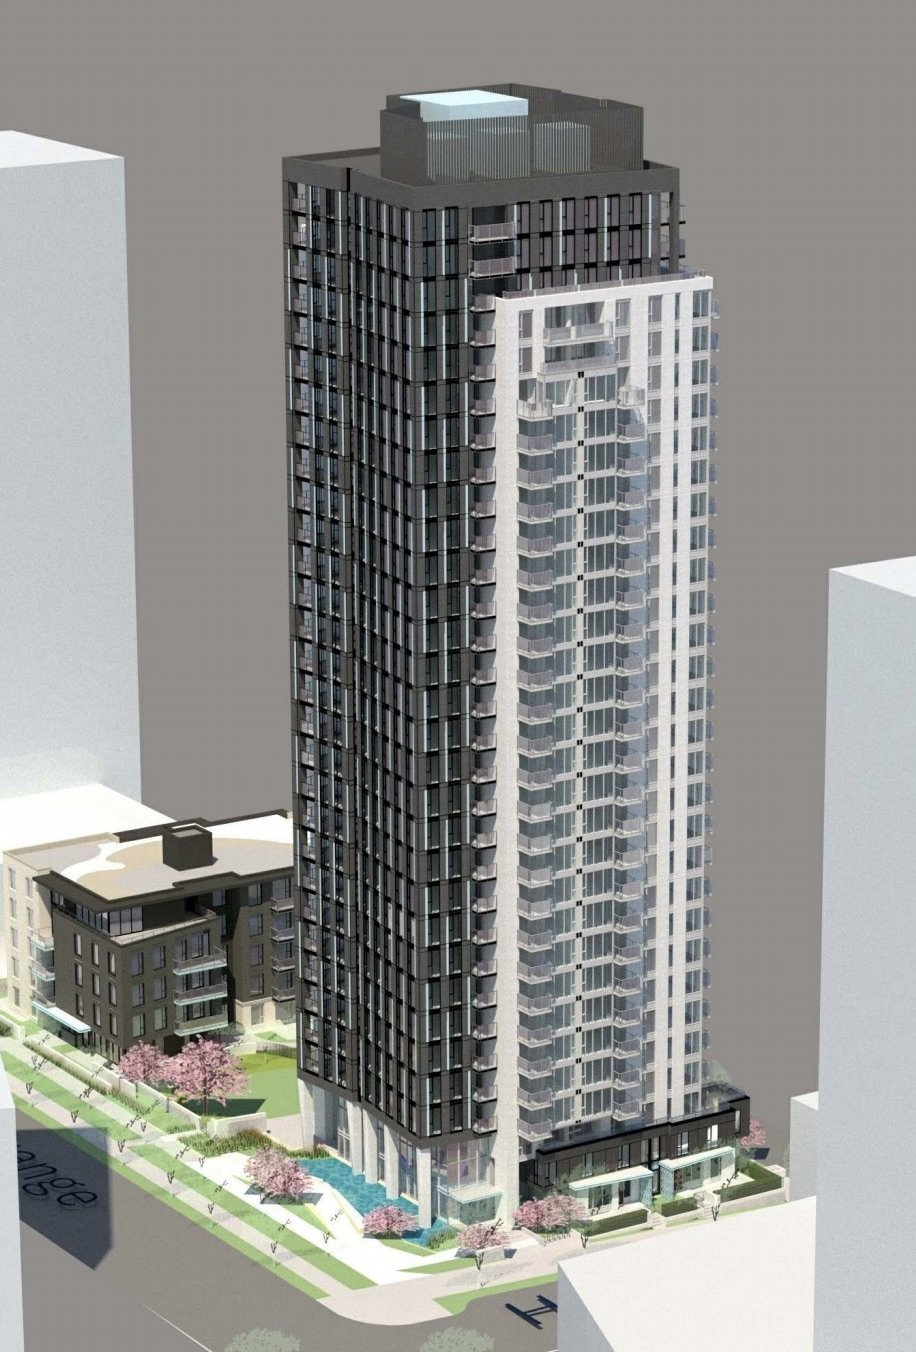 Grange St highrise model